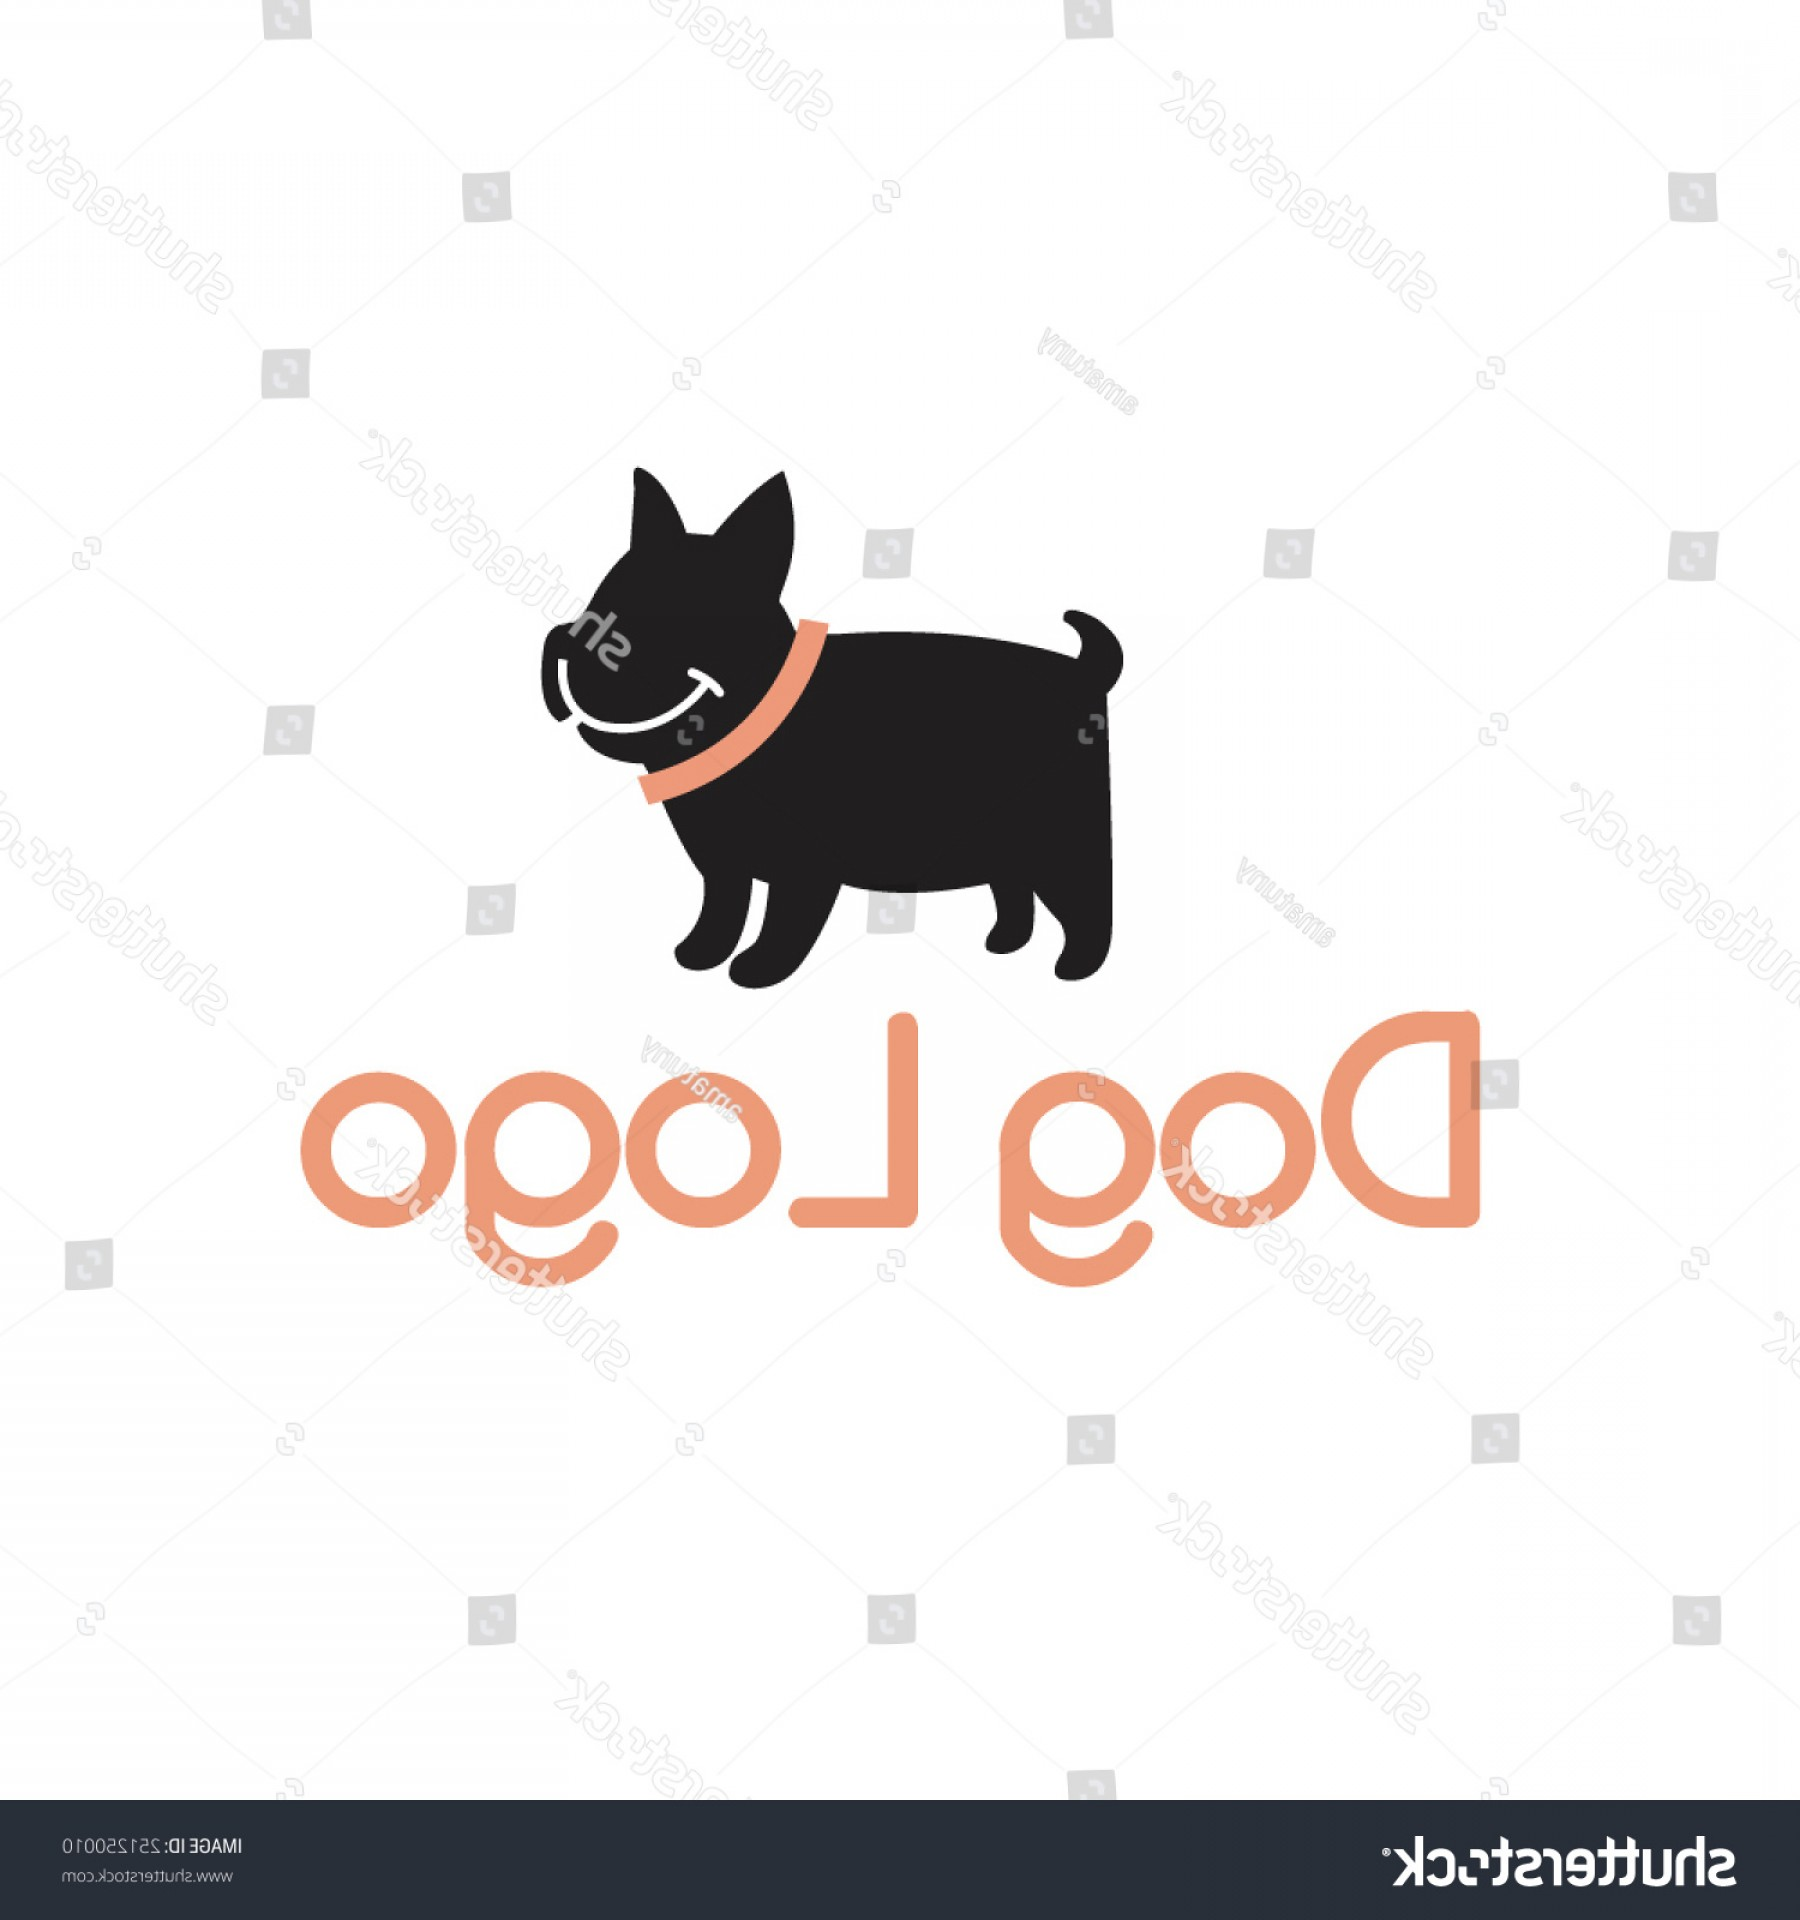 Vector Smiling Bulldog: Smiling Bulldog Abstract Dog Logo Design